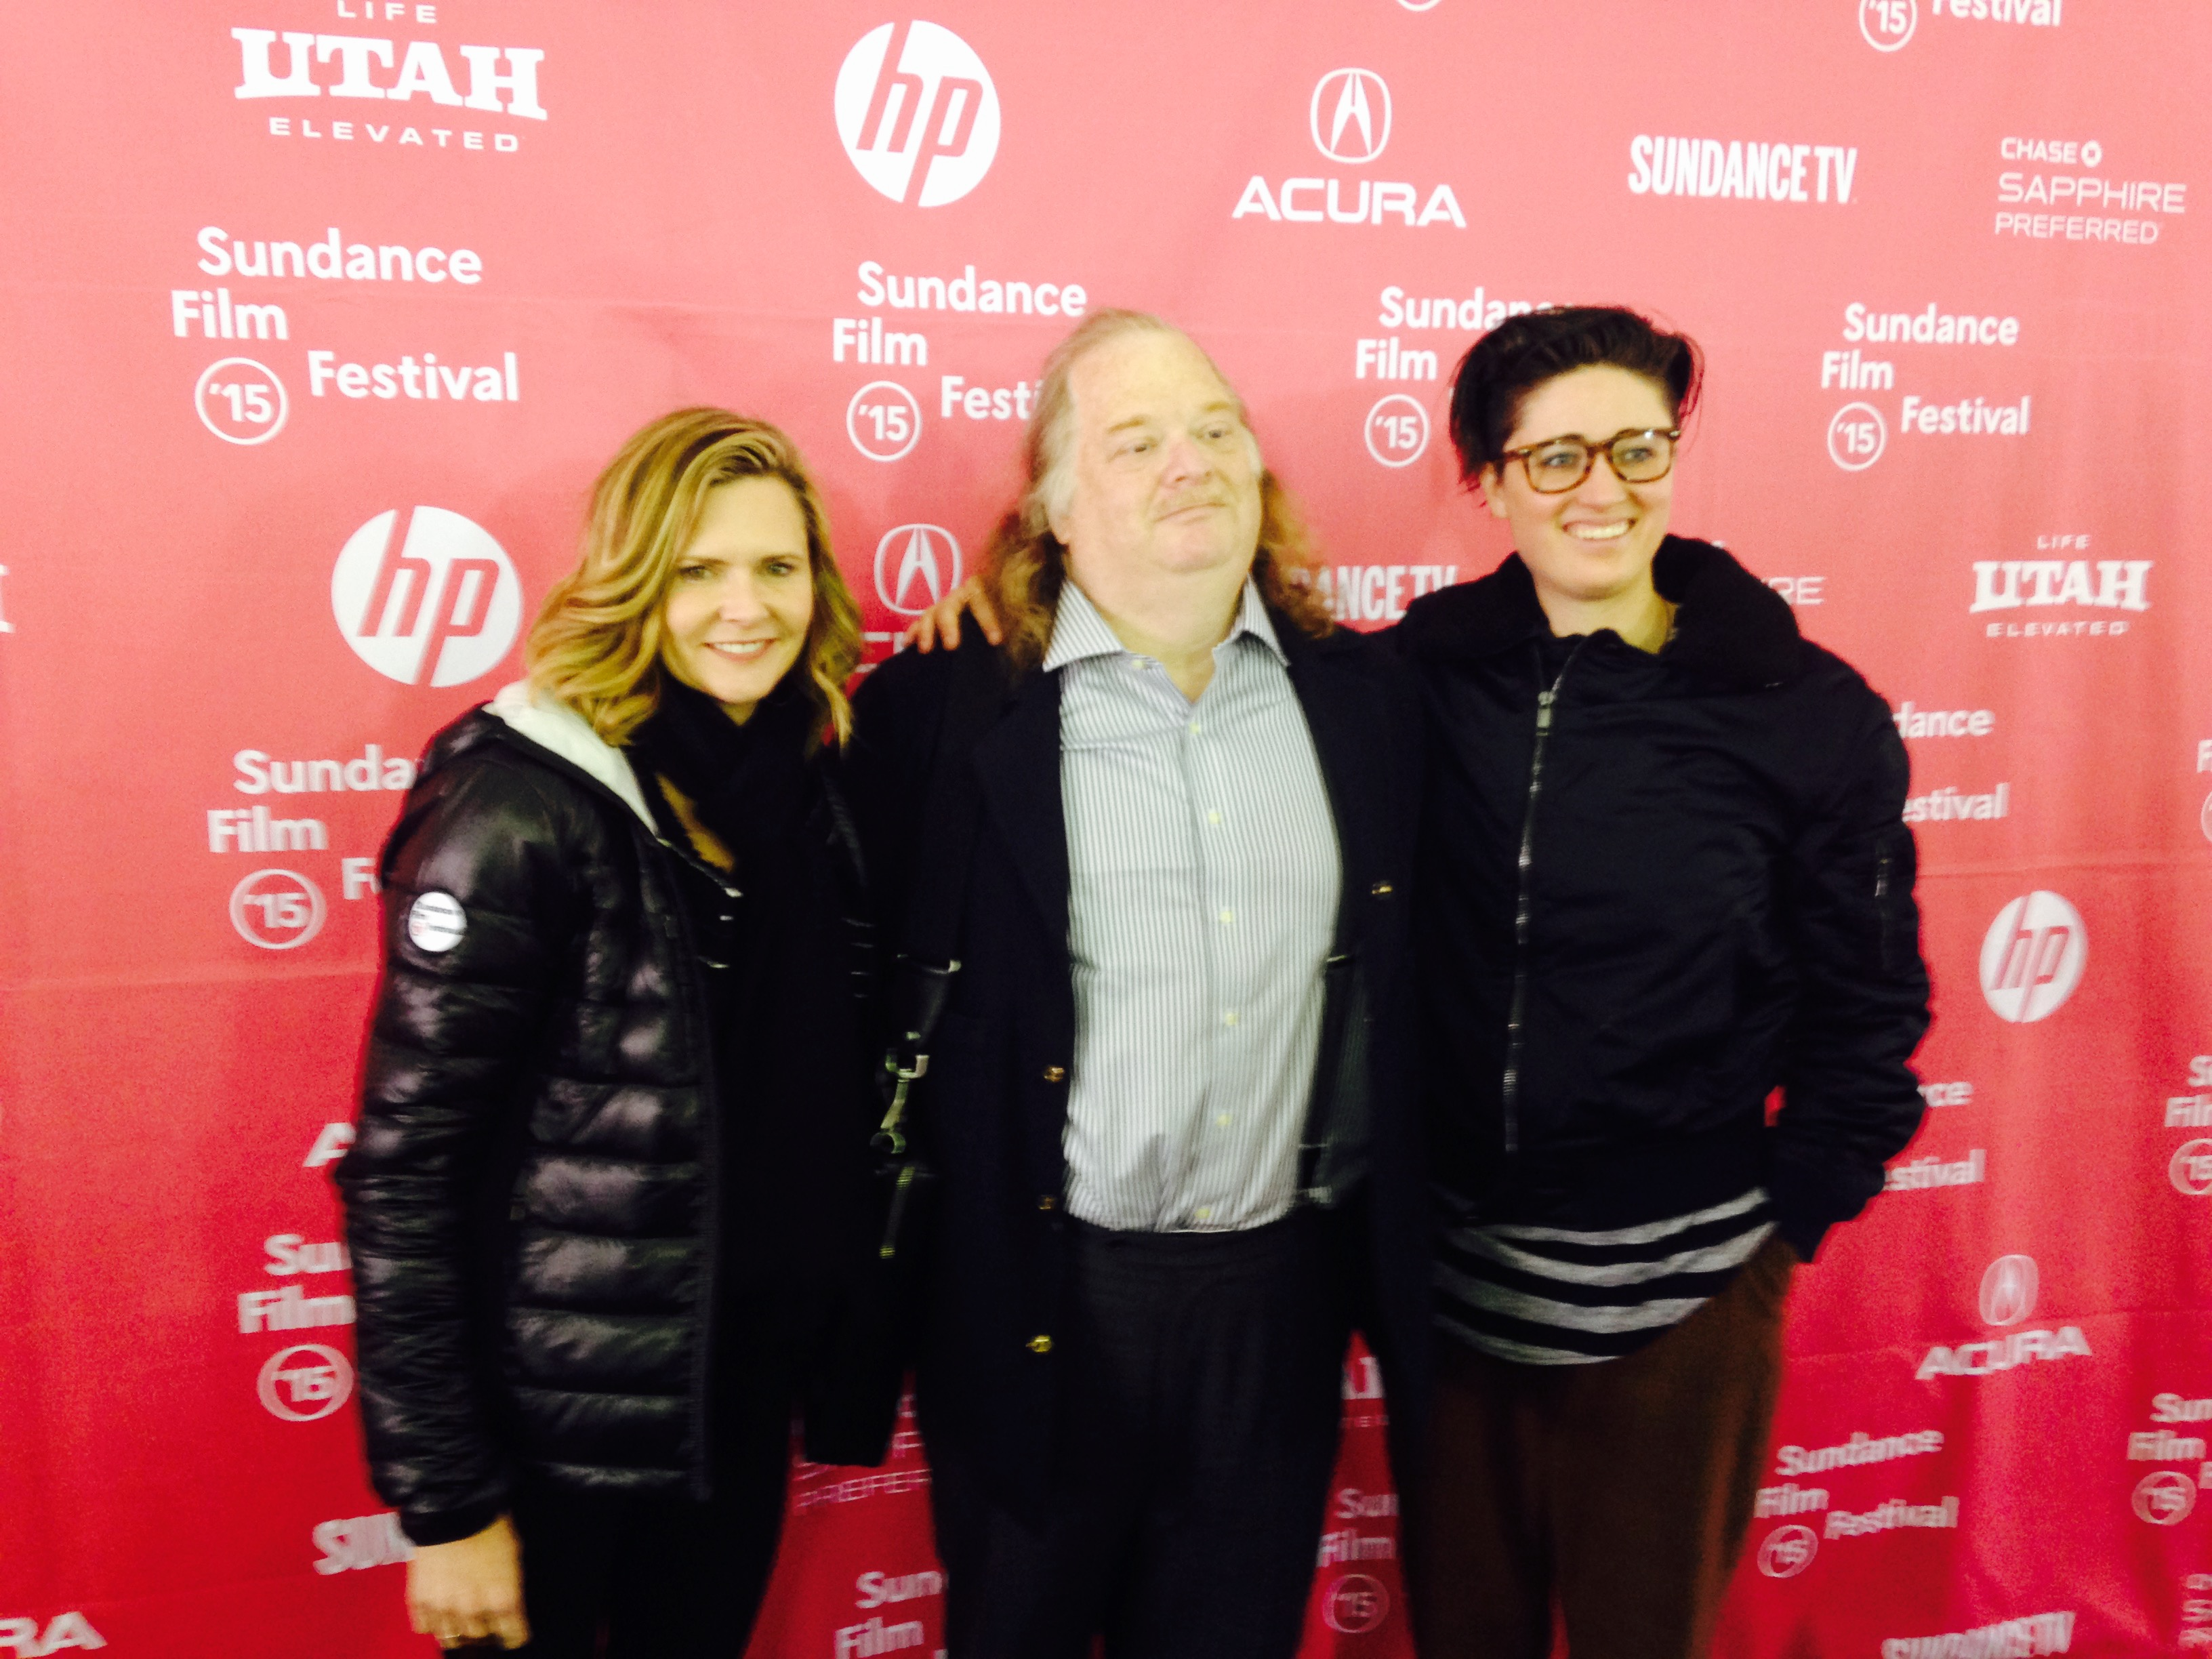 Laura Gabbert, Jonathan Gold and co-producer Andrea Lewis on the red carpet